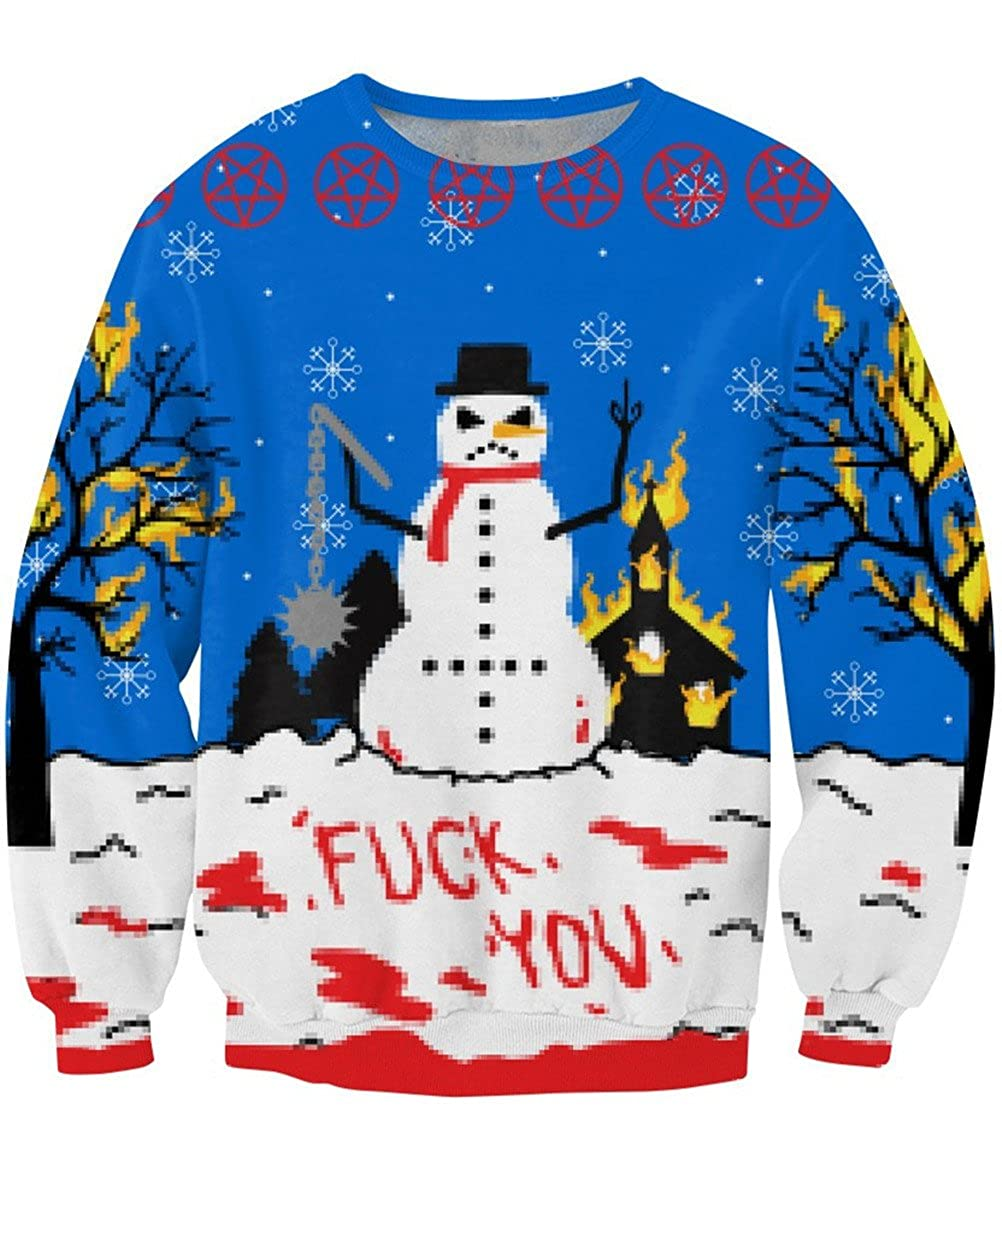 naughty christmas sweater